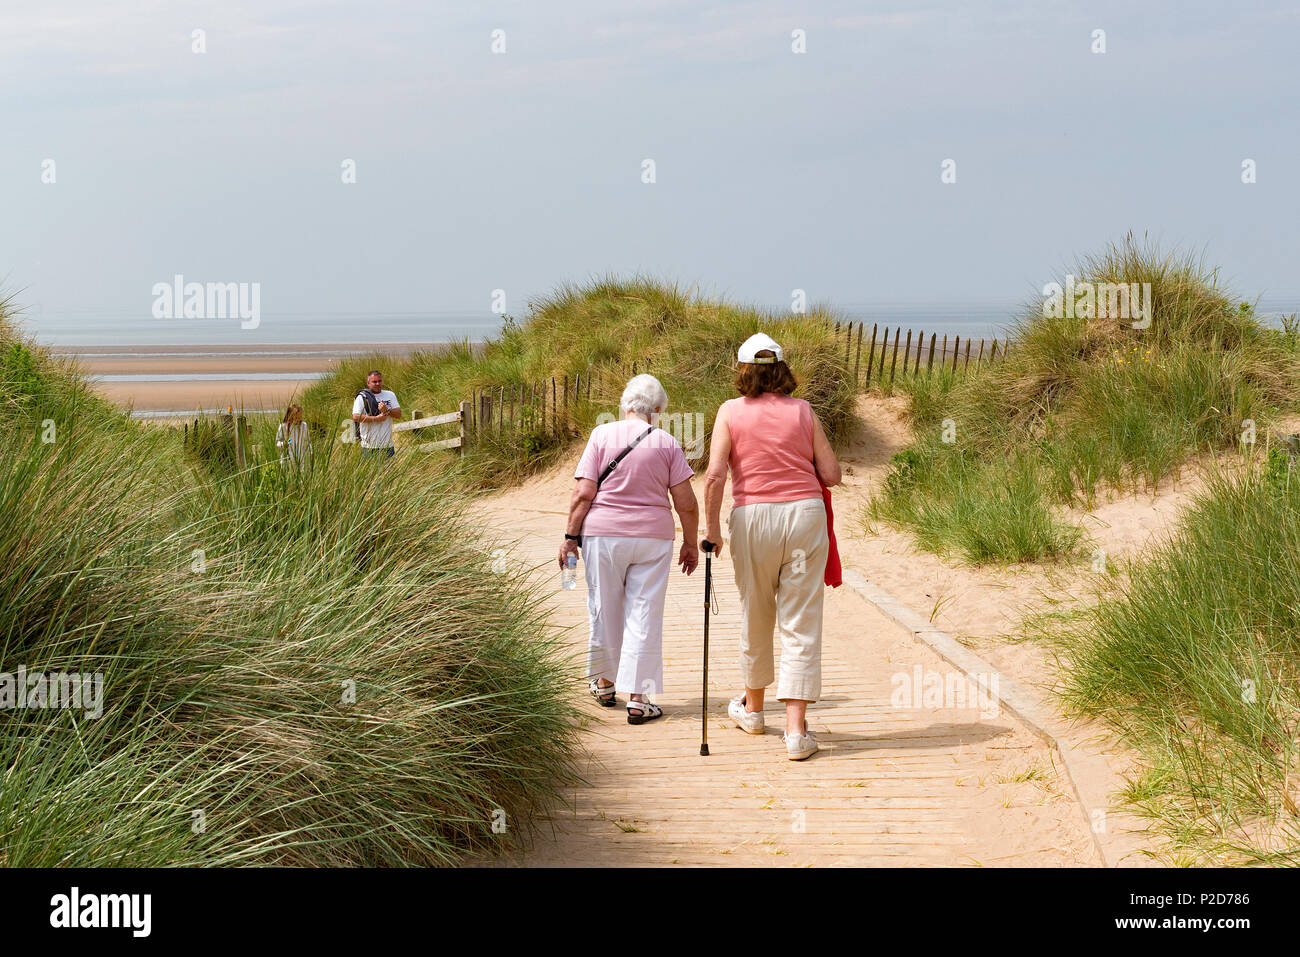 two senior ladies walking on a footpath at fomby beach near liverpool, england, britain, uk, - Stock Image